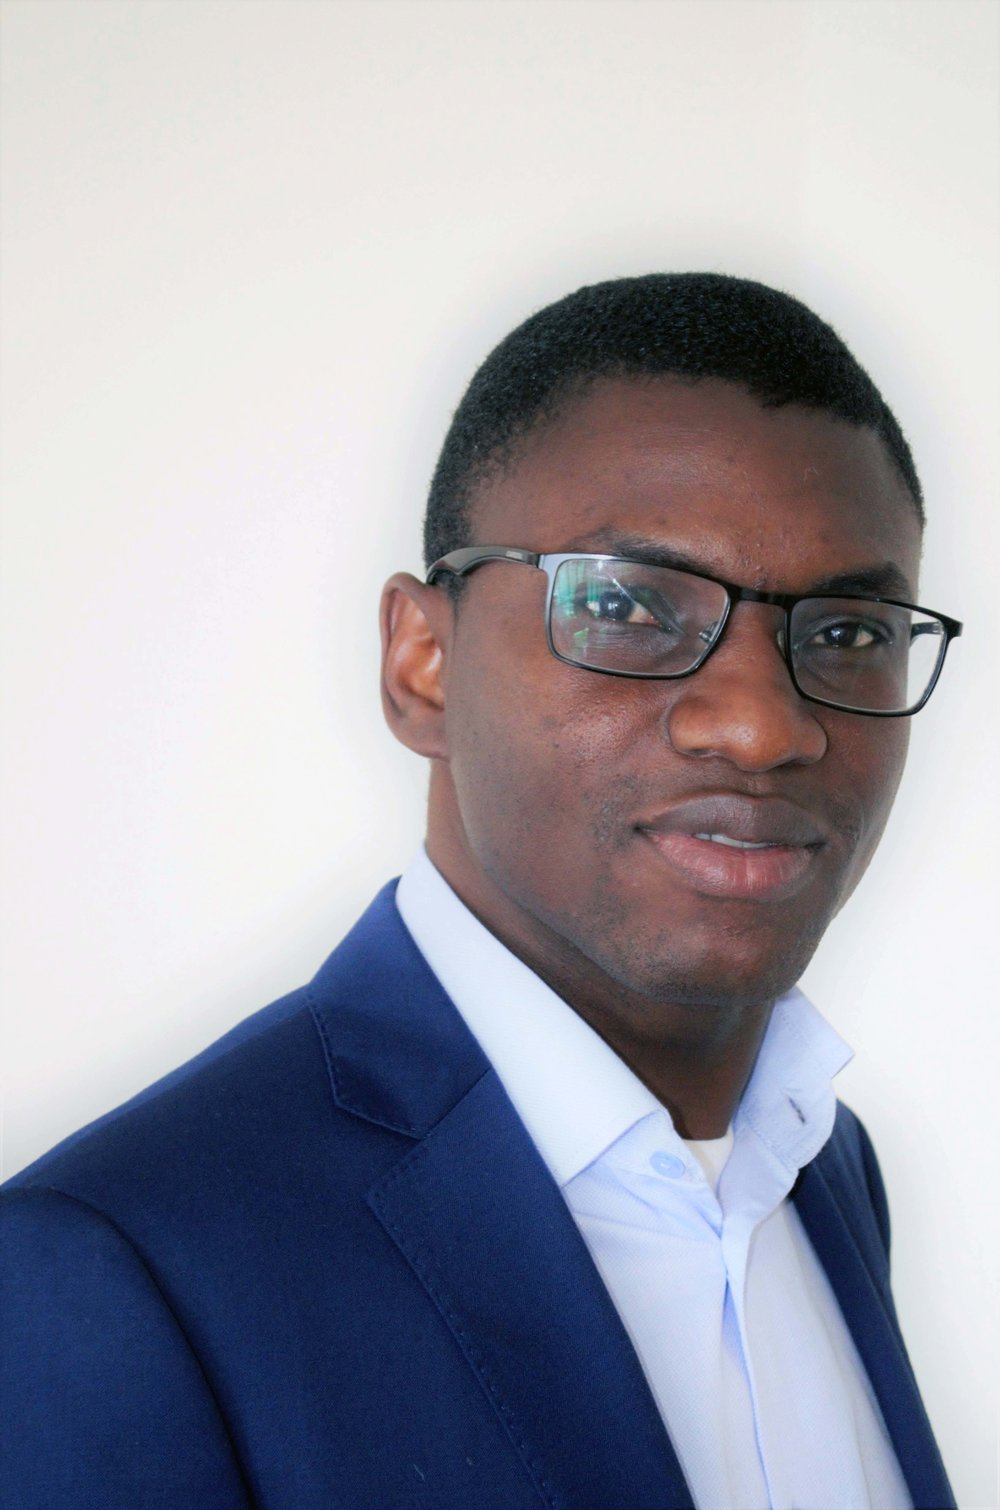 - Dr. Olabanji AkinolaAssistant Professor of Political Science, Department of Law and Politics, Algoma University, Sault Sainte Marie, Ontario, Canada.